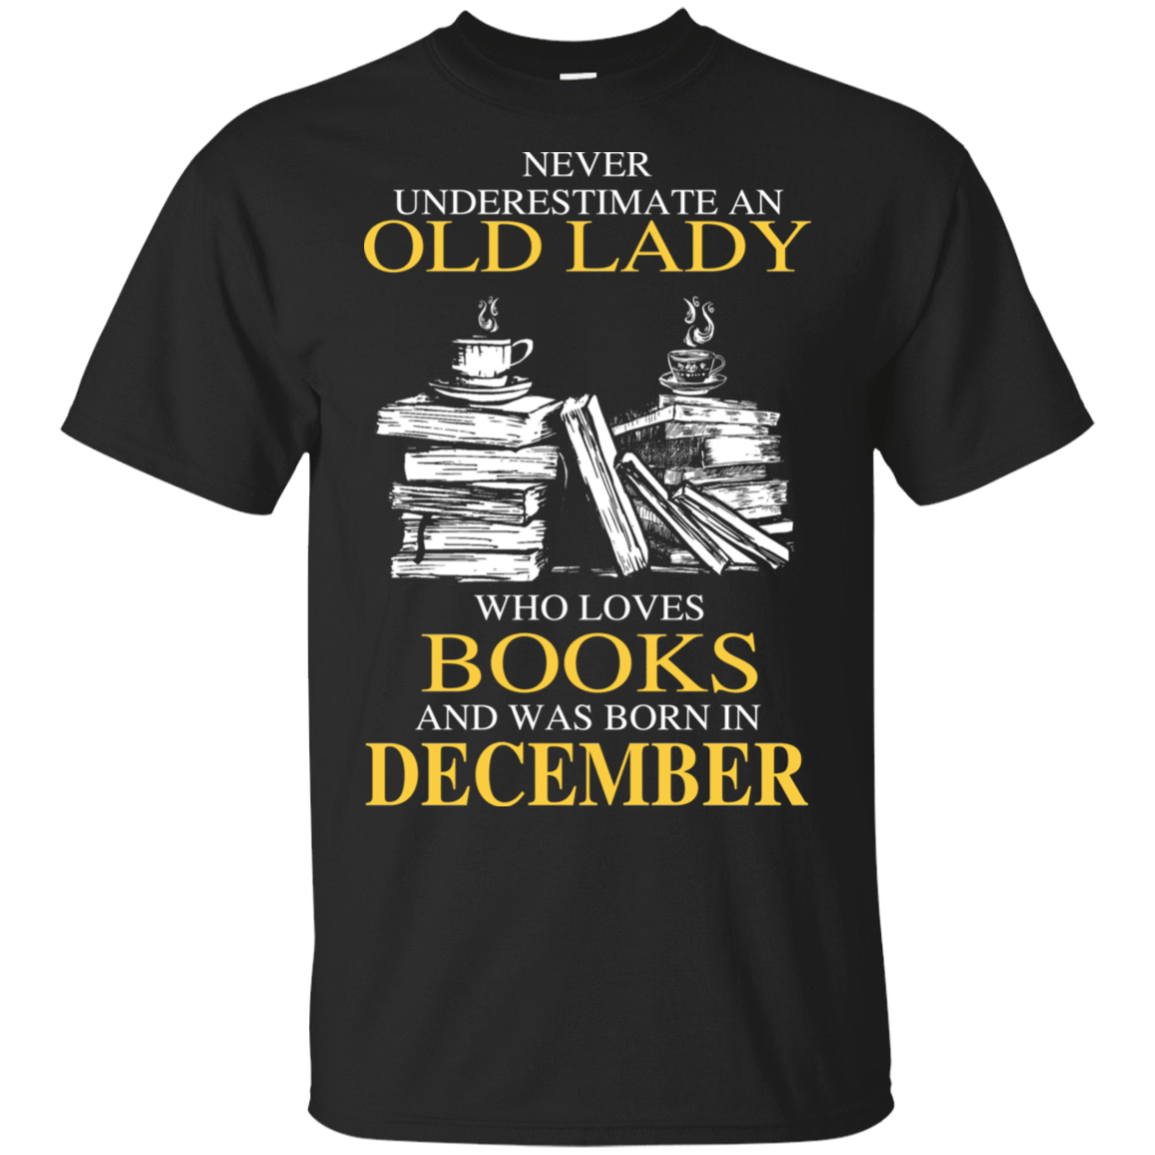 Never Underestimate An Old Lady Who Loves Books And Was Born In December T-Shirts, Hoodies 22-113-78318920-252 - Tee Ript